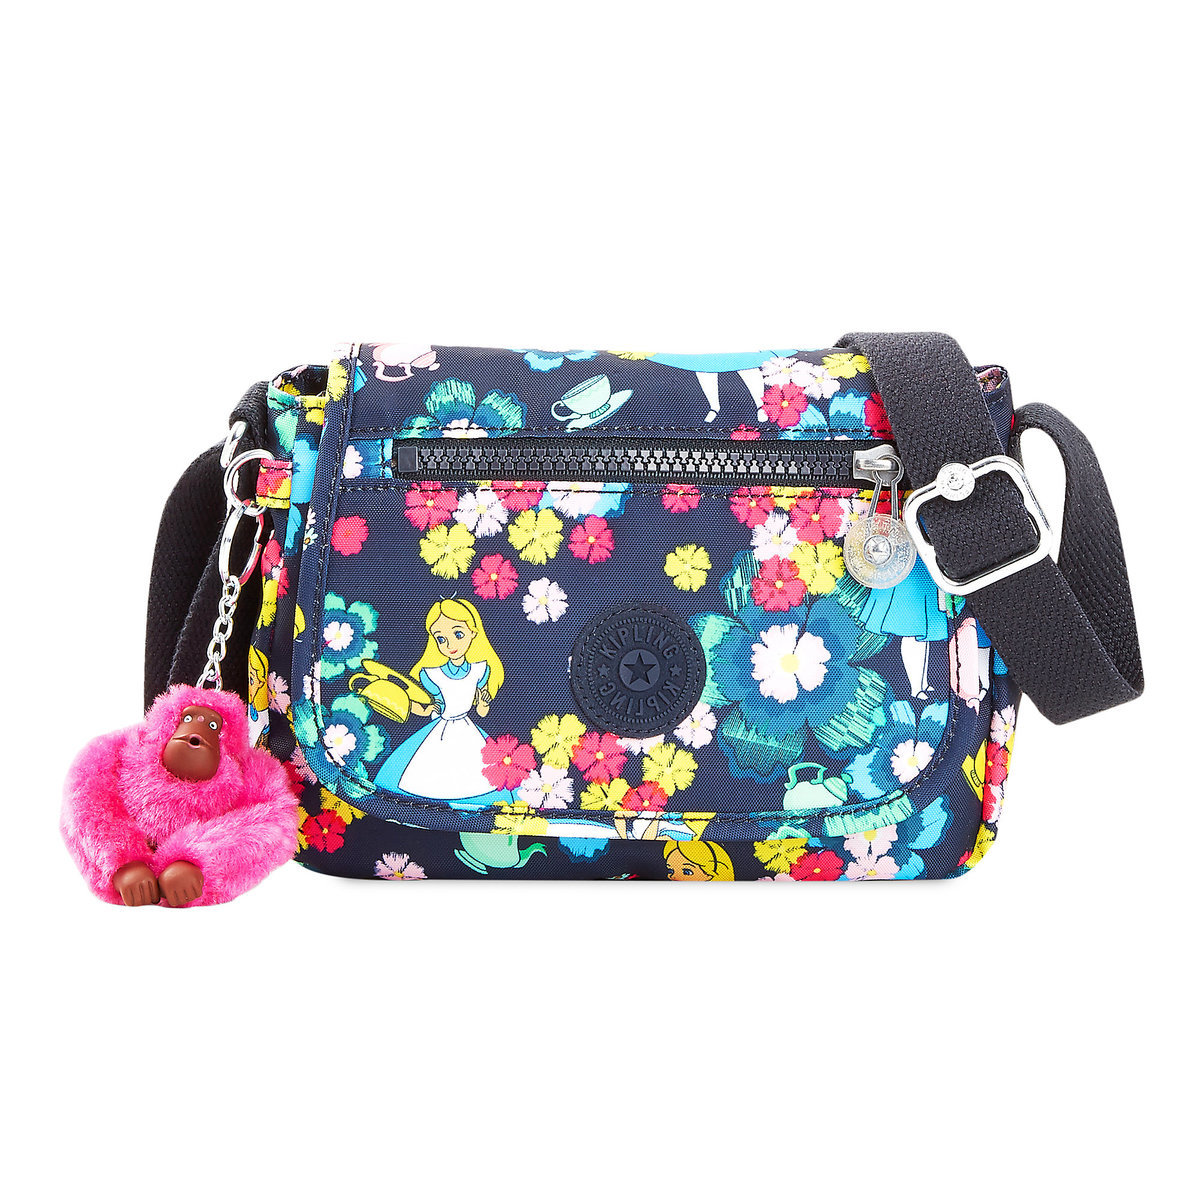 9058459644 Product Image of Alice in Wonderland Crossbody Bag by Kipling - Small # 1